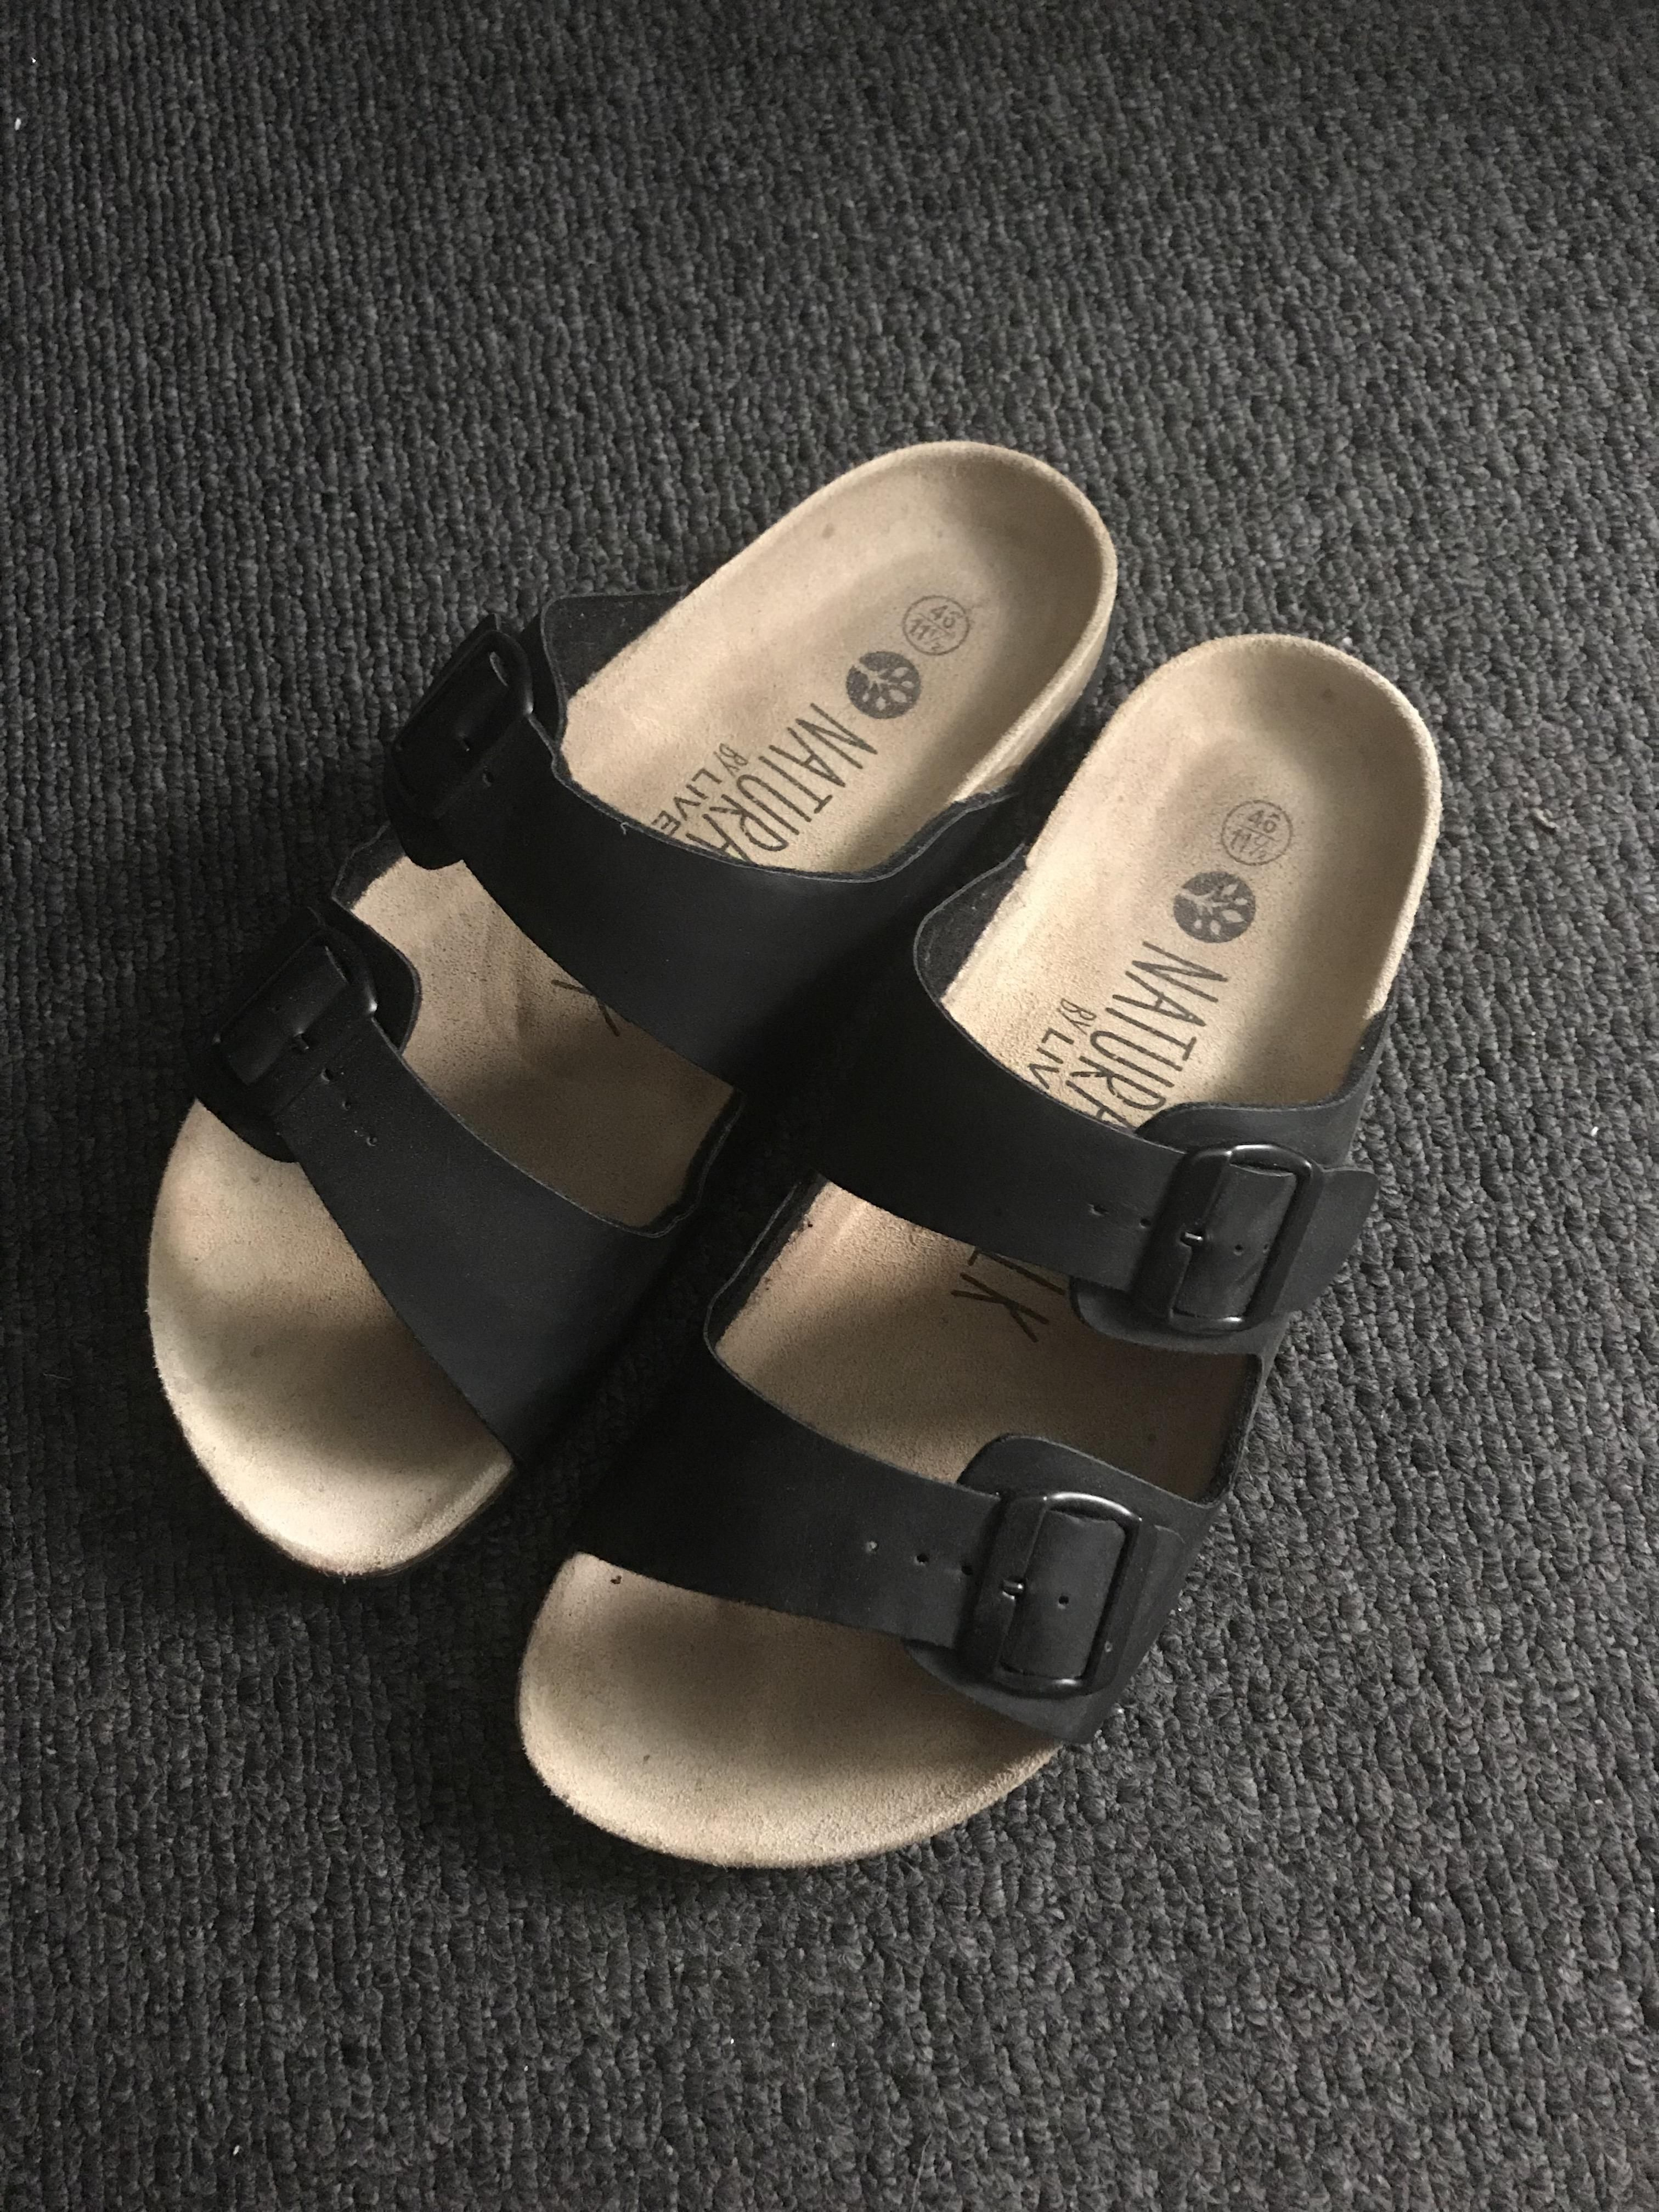 Lidl is seling sandals similar to Birkenstocks